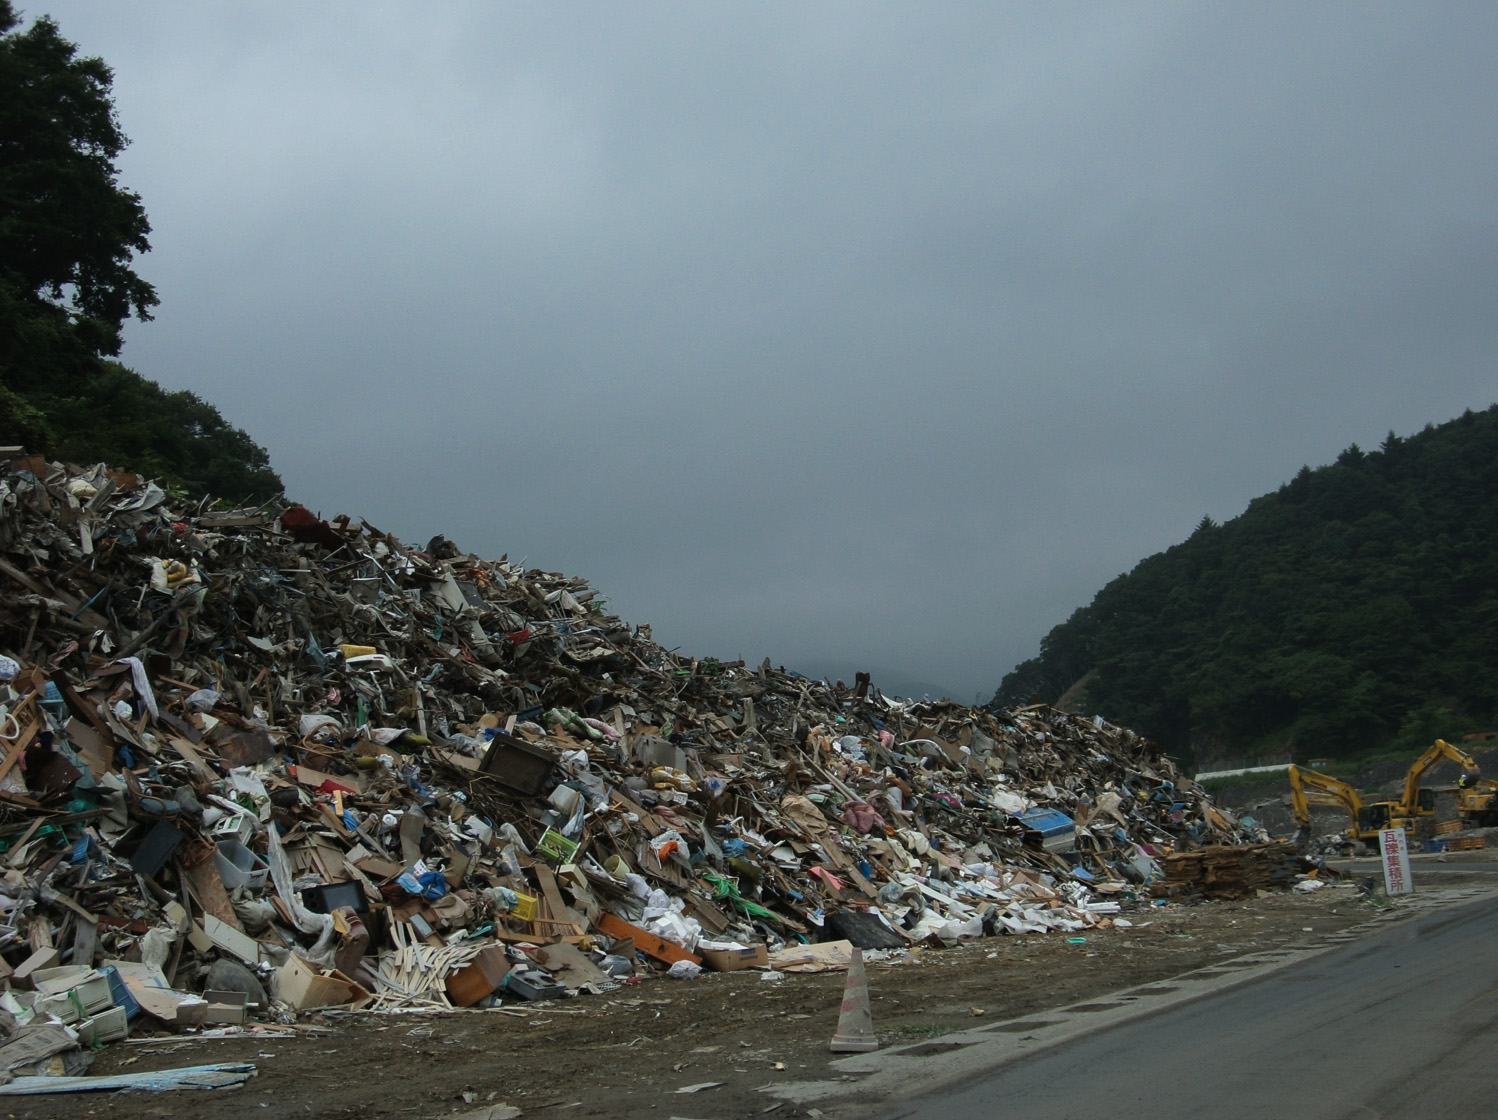 Debris from the tsunami disaster is piled high in a hard-hit coastal town in Miyagi Prefecture.